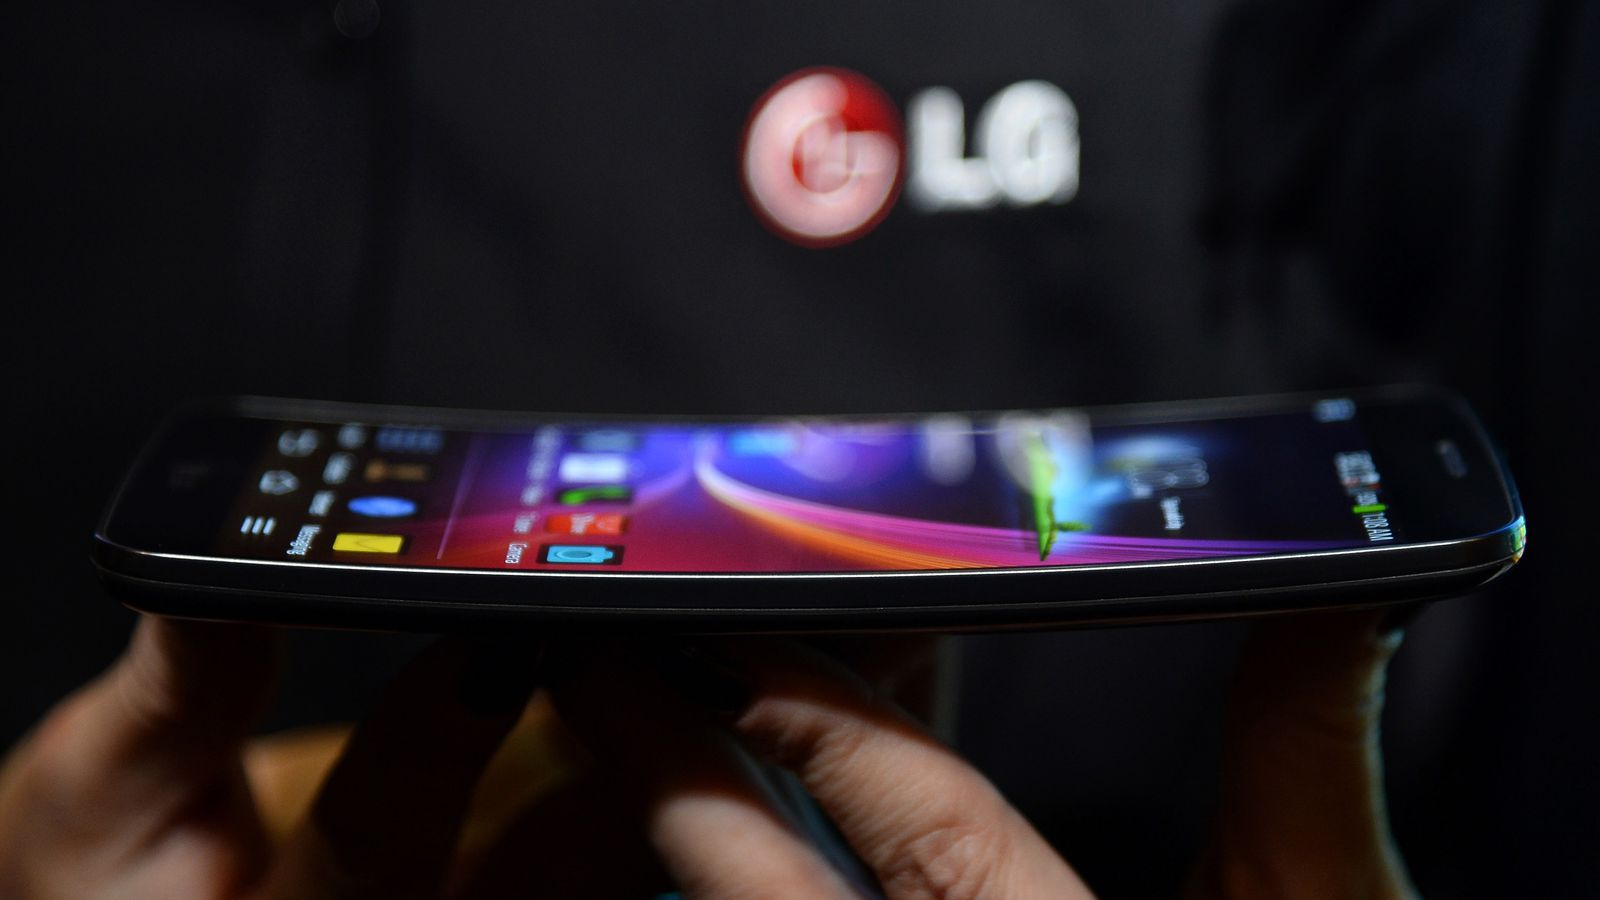 LG Display invests $1.7 billion to produce flexible OLED ...